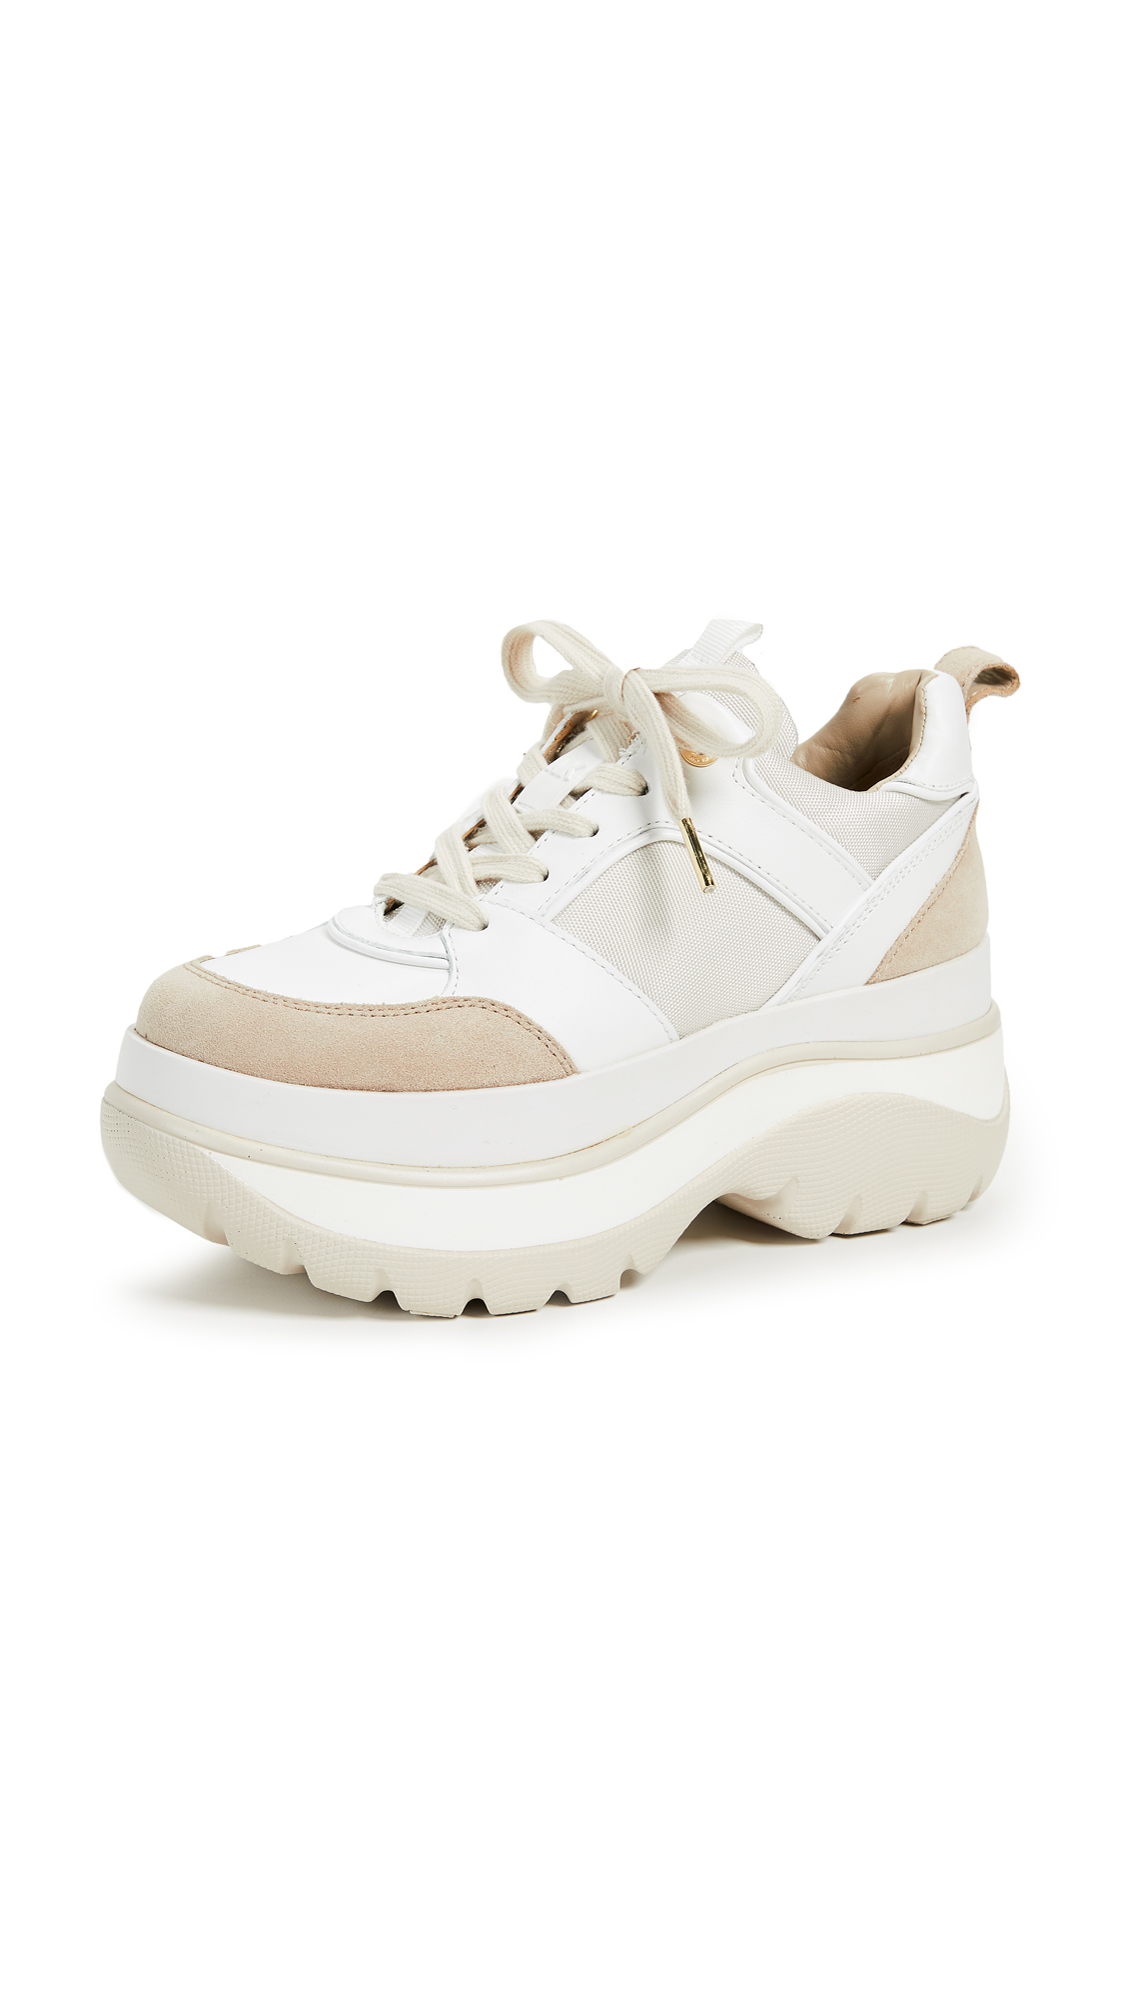 MICHAEL Michael Kors Felicia Trainer Sneakers - Ecru/Optic White